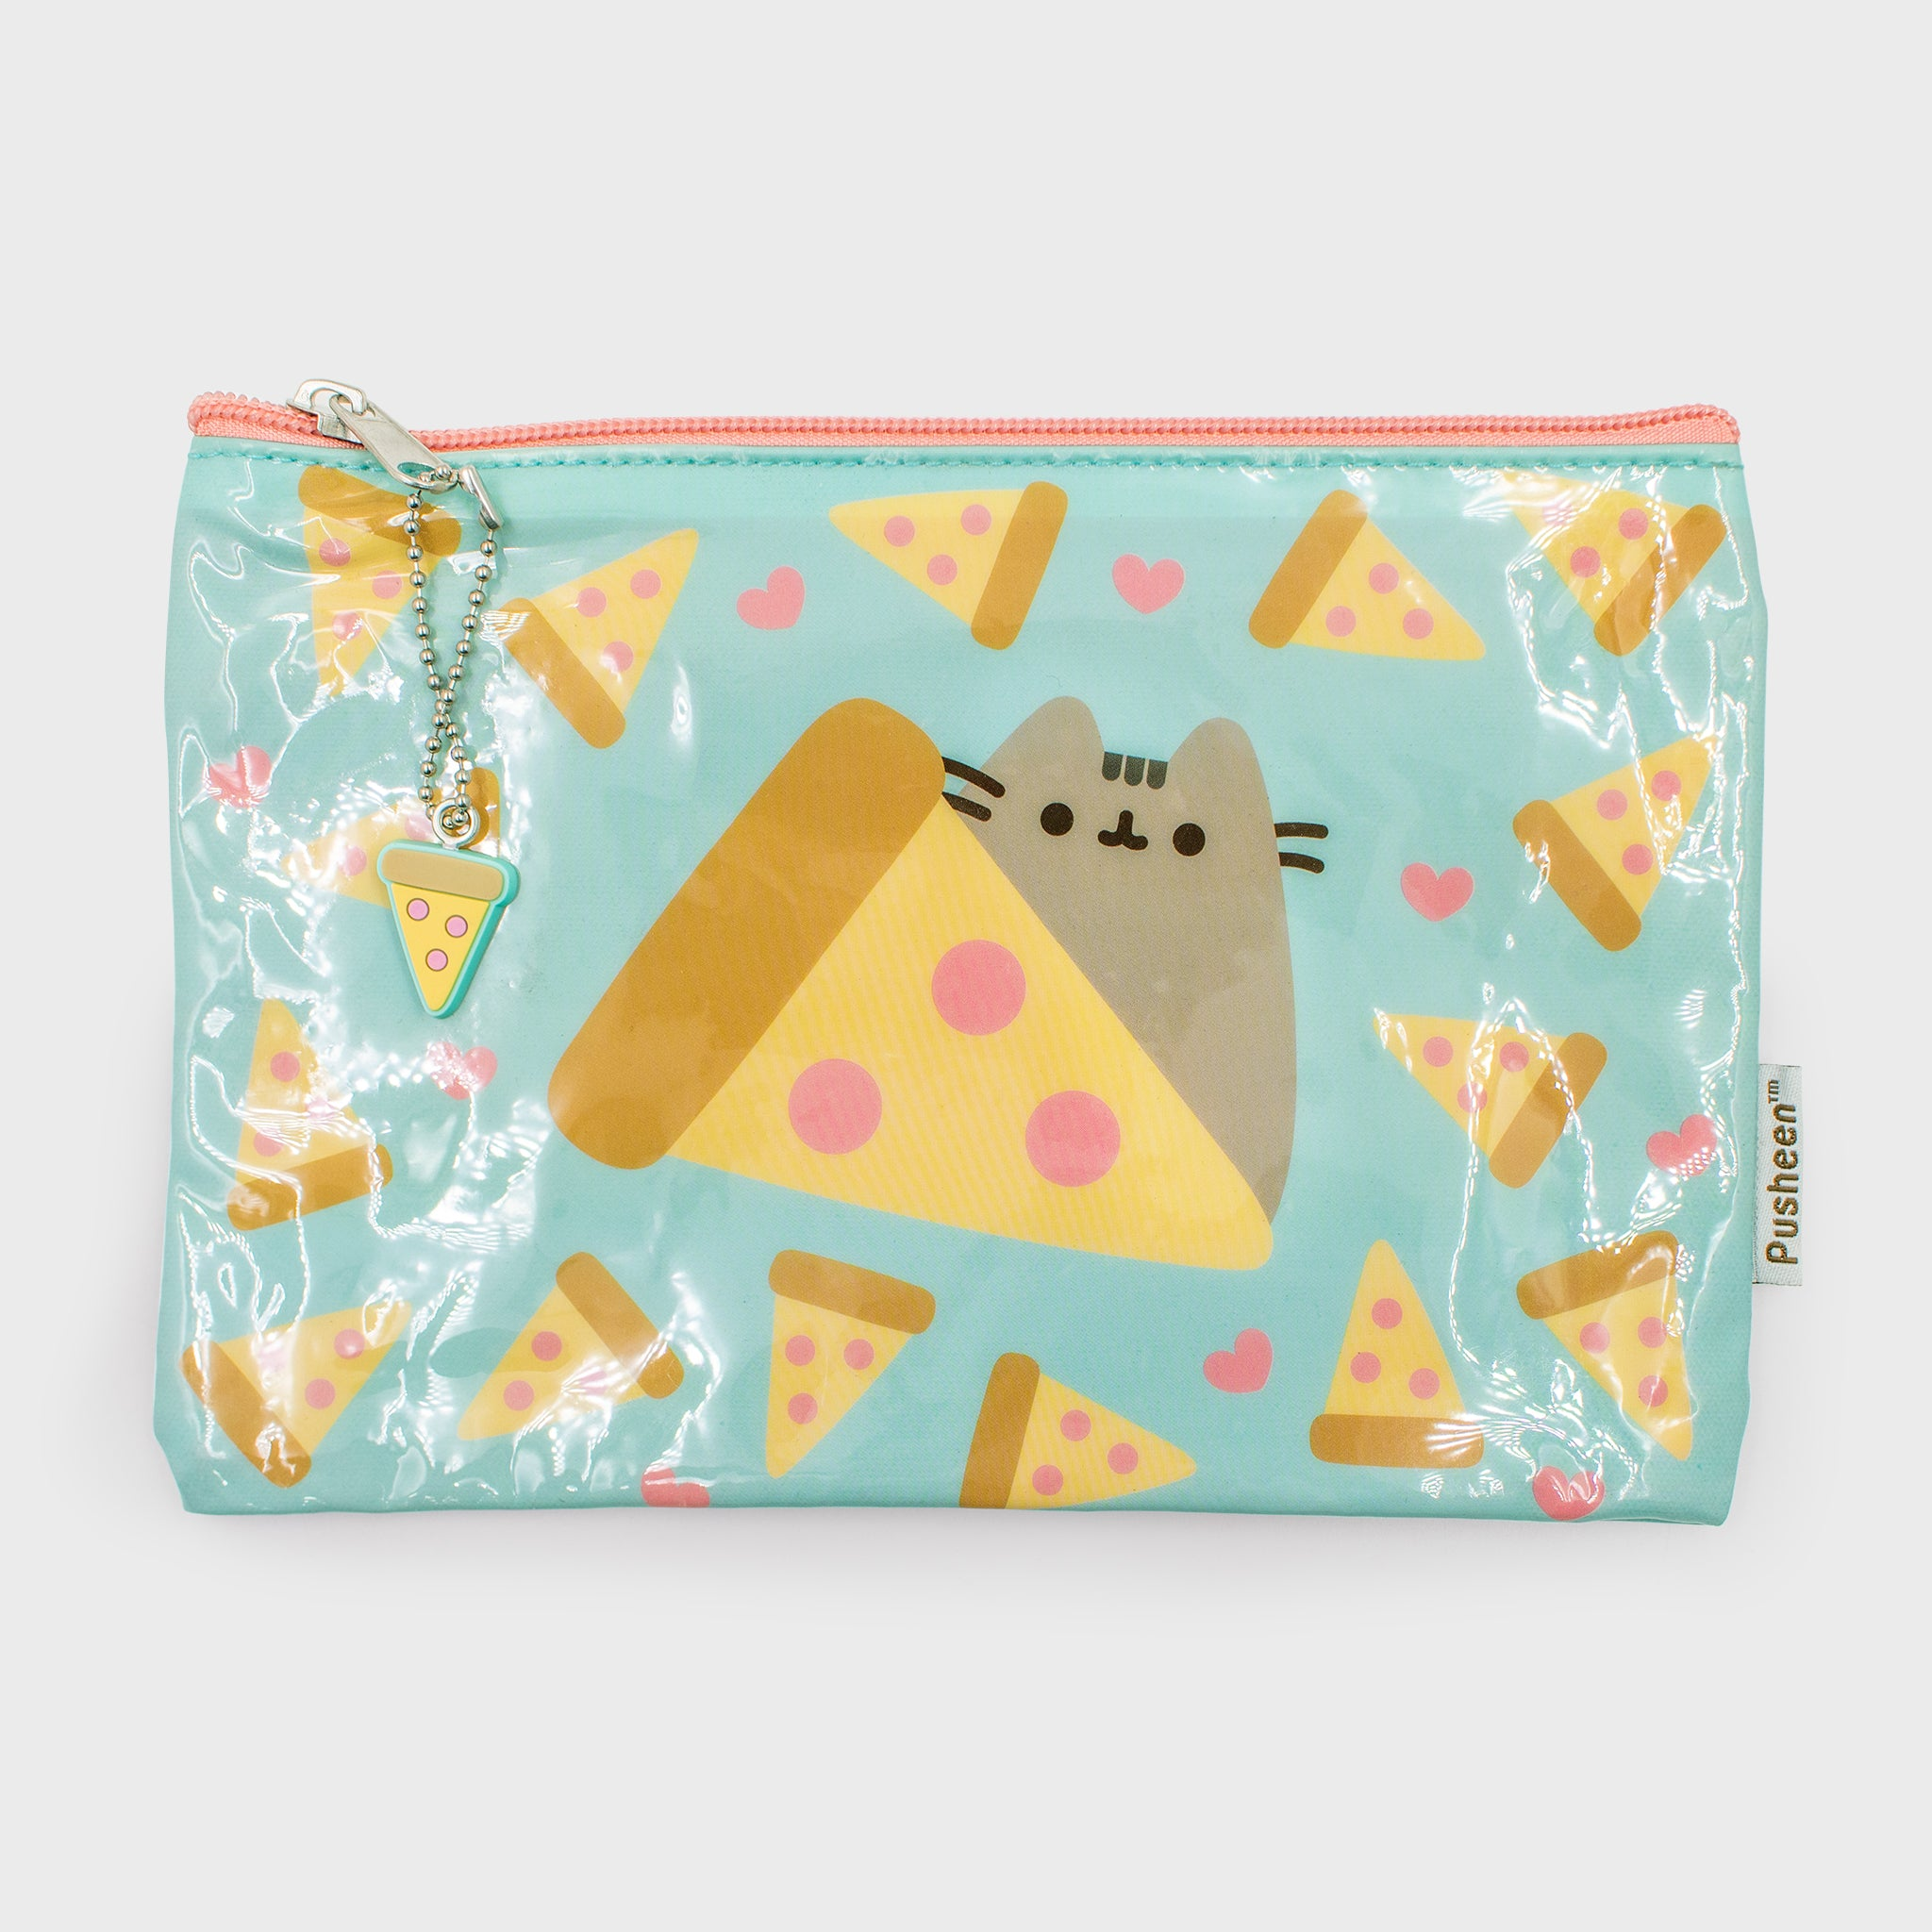 pusheen pencil pouch pencil bag pizza back to school cute cat culturefly